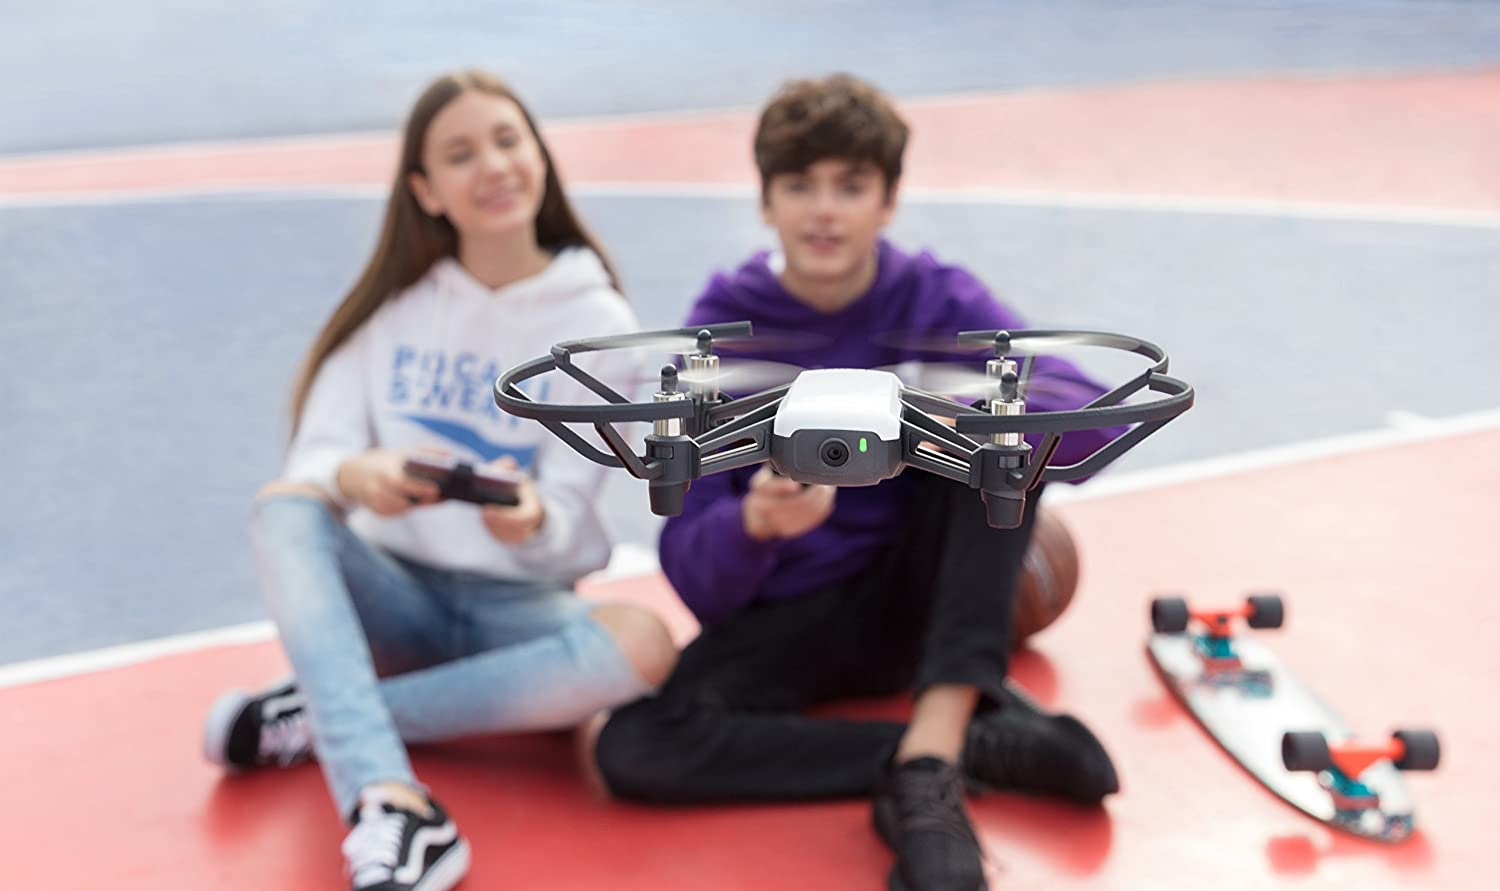 Ryze Tello by Dji is the best quadcopter for beginners with camera